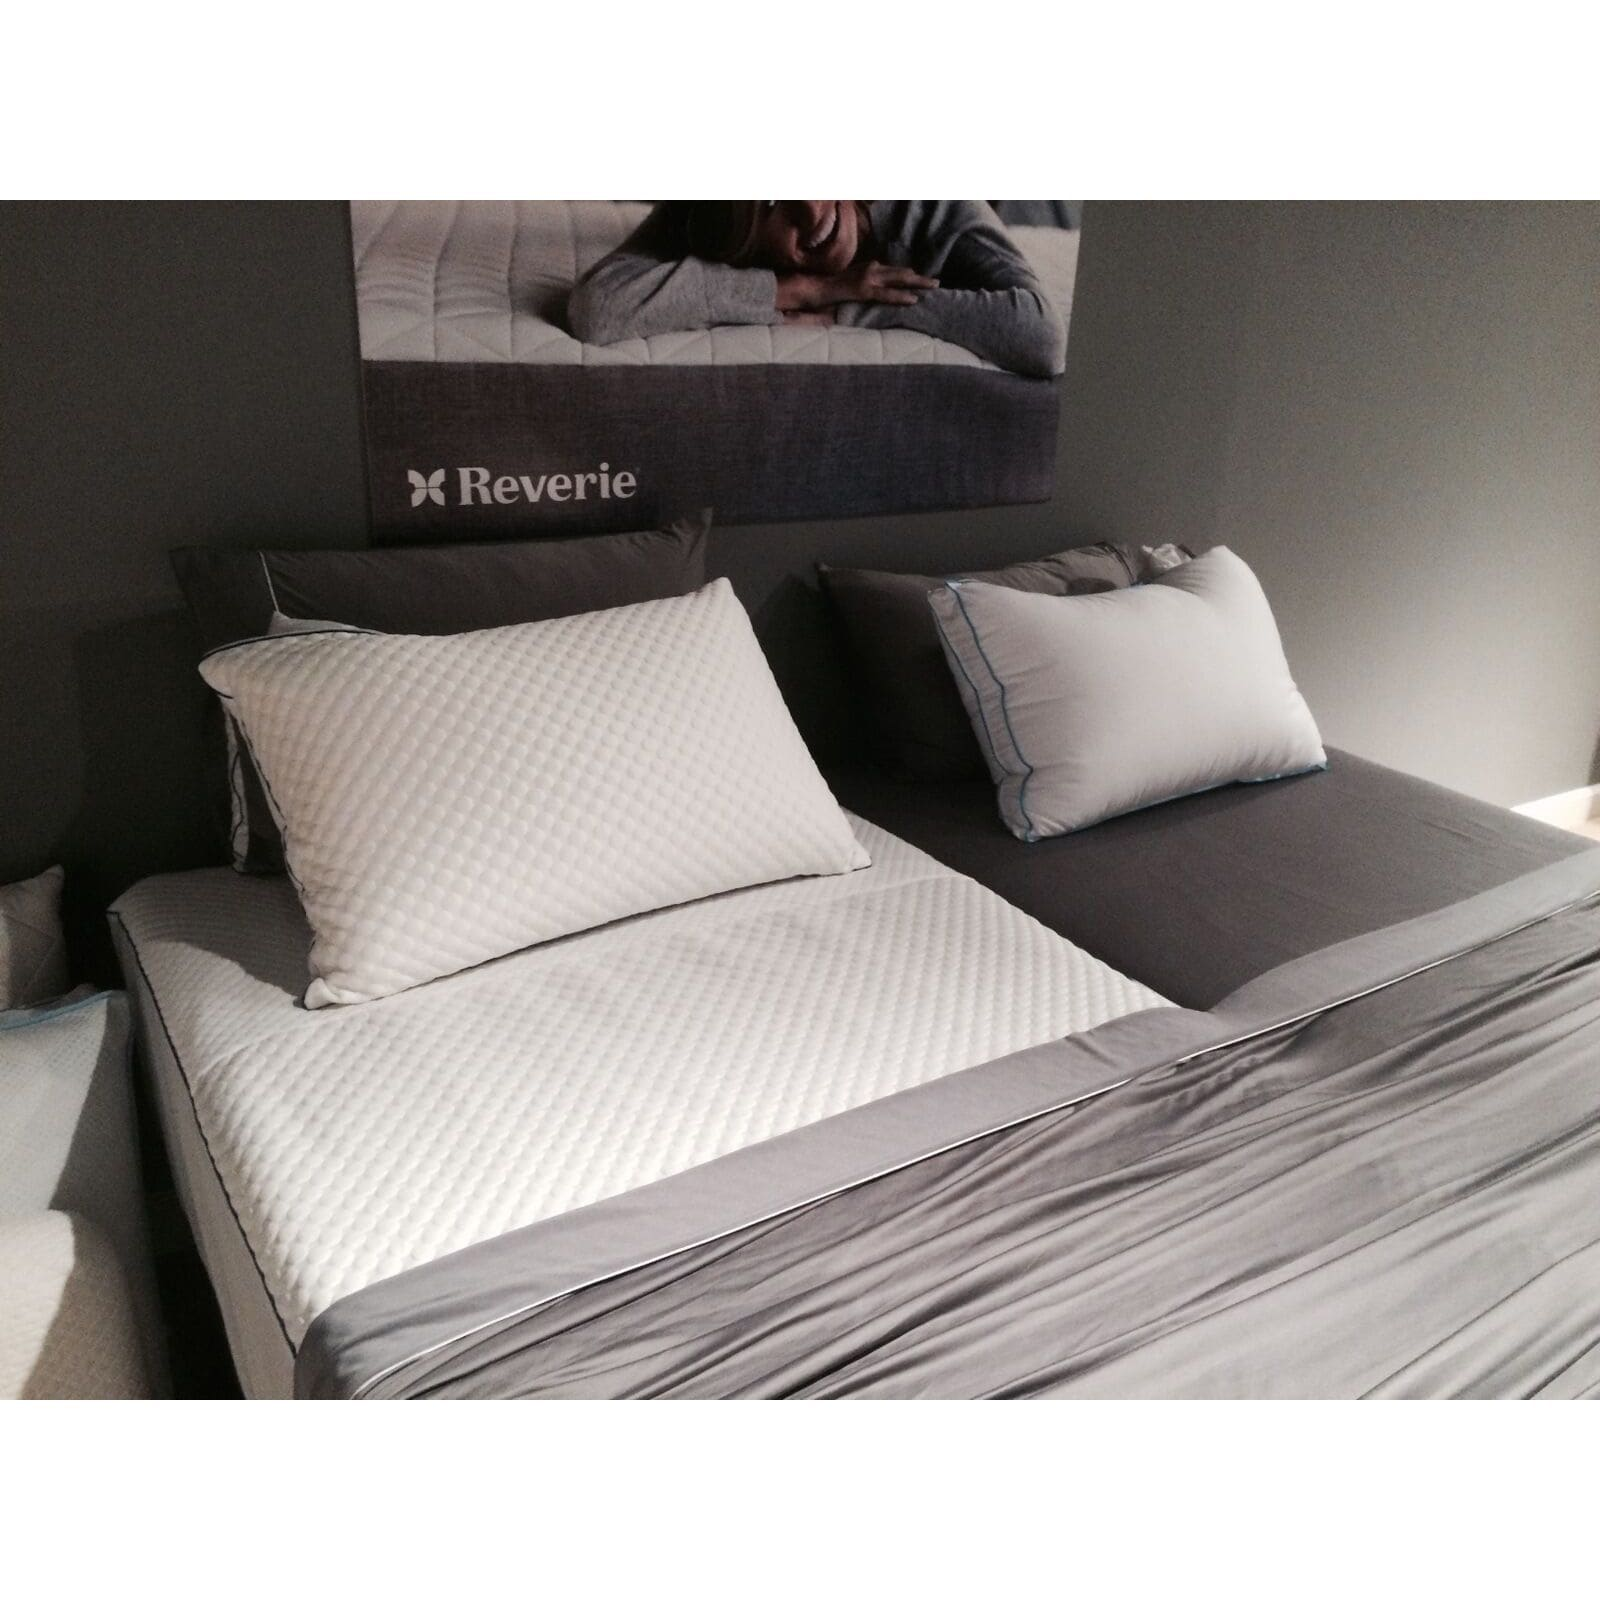 Reverie Cool Zone Waterproof Mattress Protector